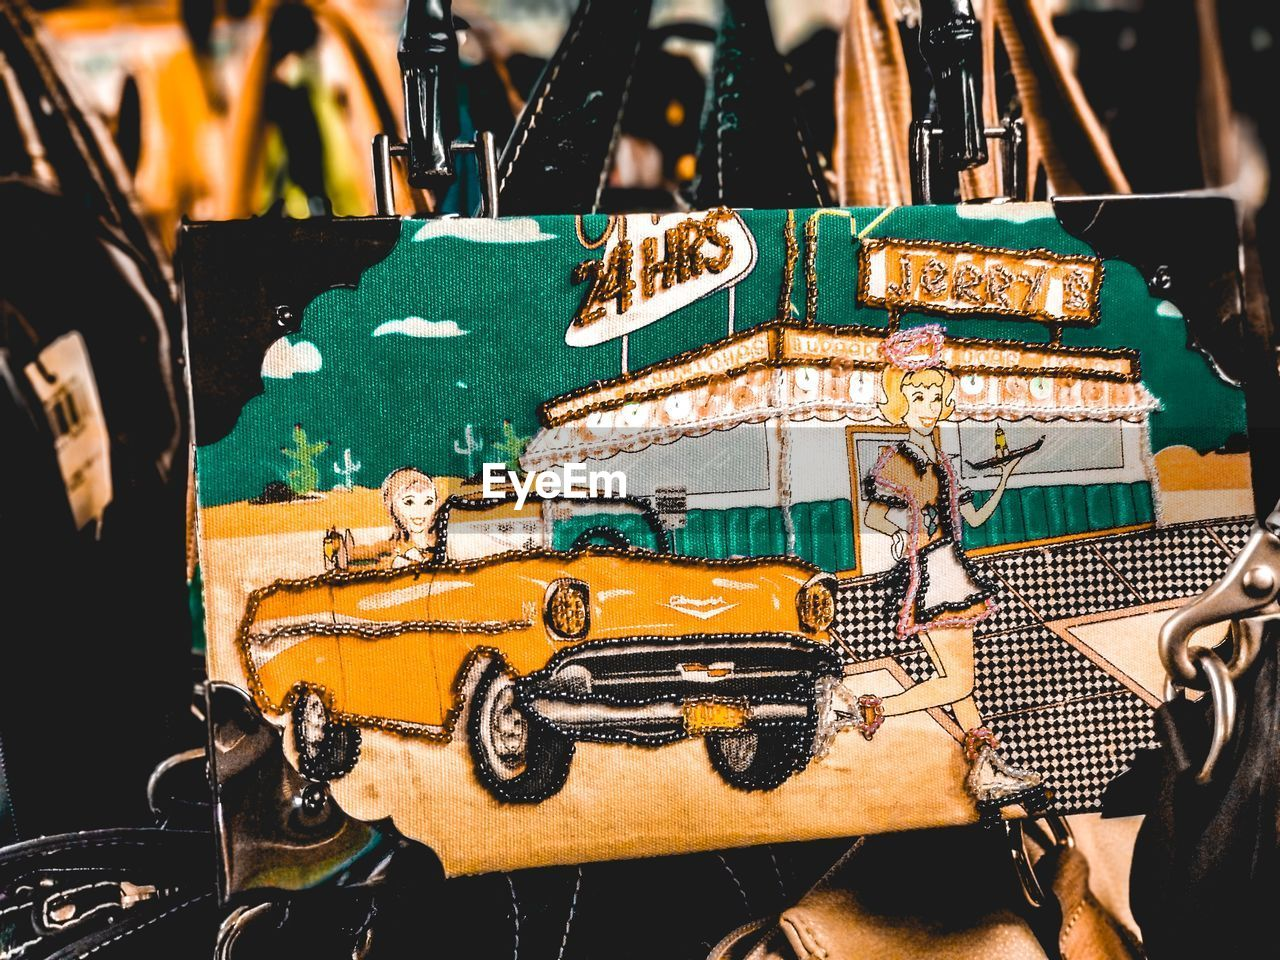 no people, close-up, large group of objects, for sale, high angle view, day, business, market, green color, retail, representation, indoors, arts culture and entertainment, sunlight, choice, nature, variation, art and craft